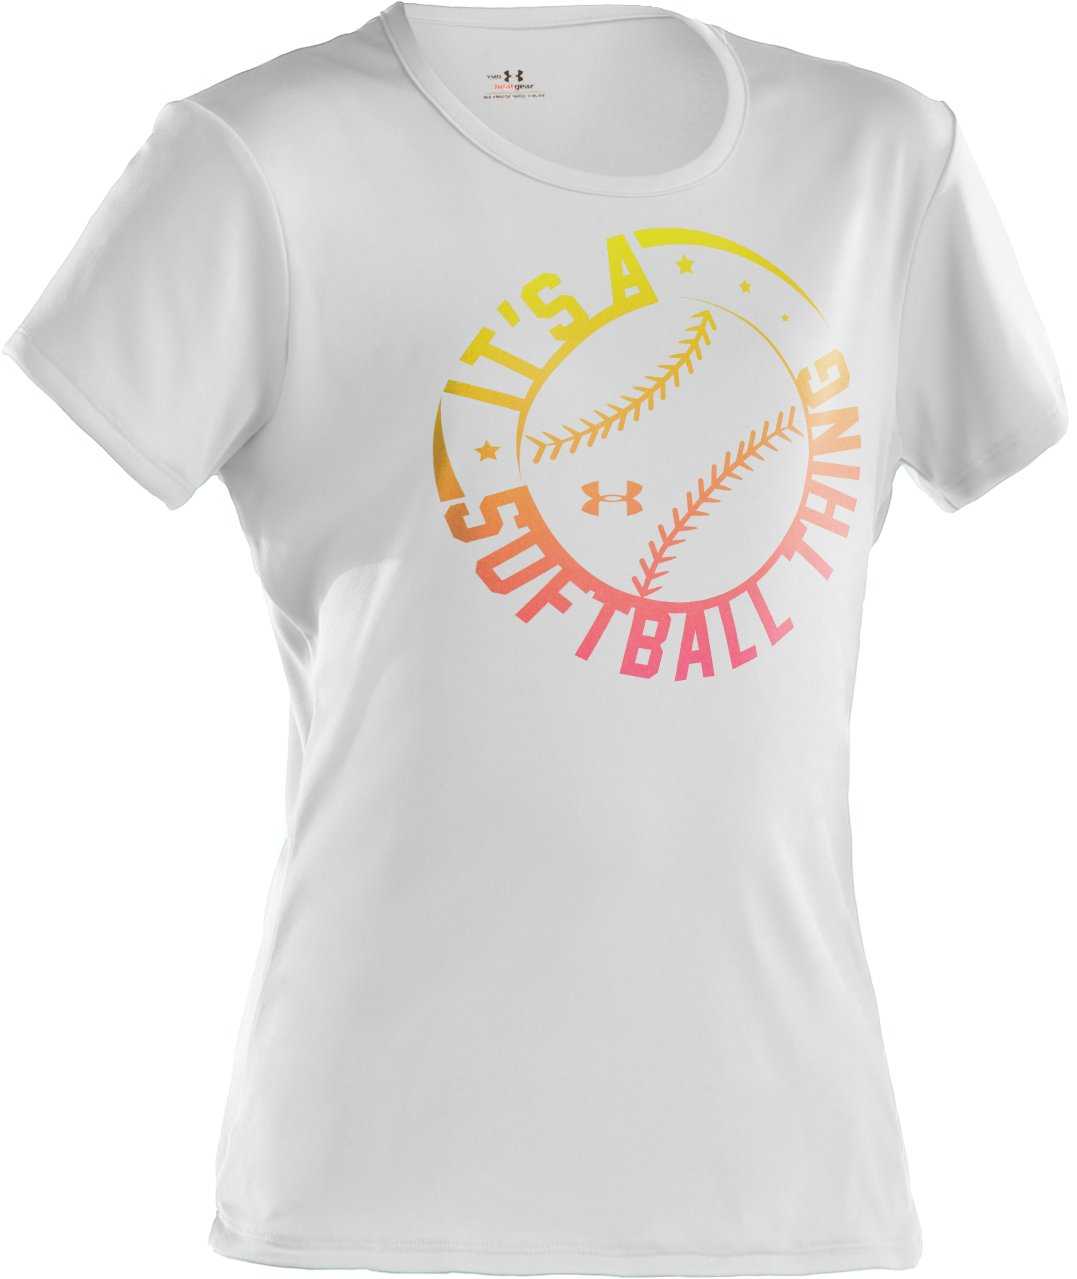 Girls' It's A Softball Thing Graphic T-Shirt, White,